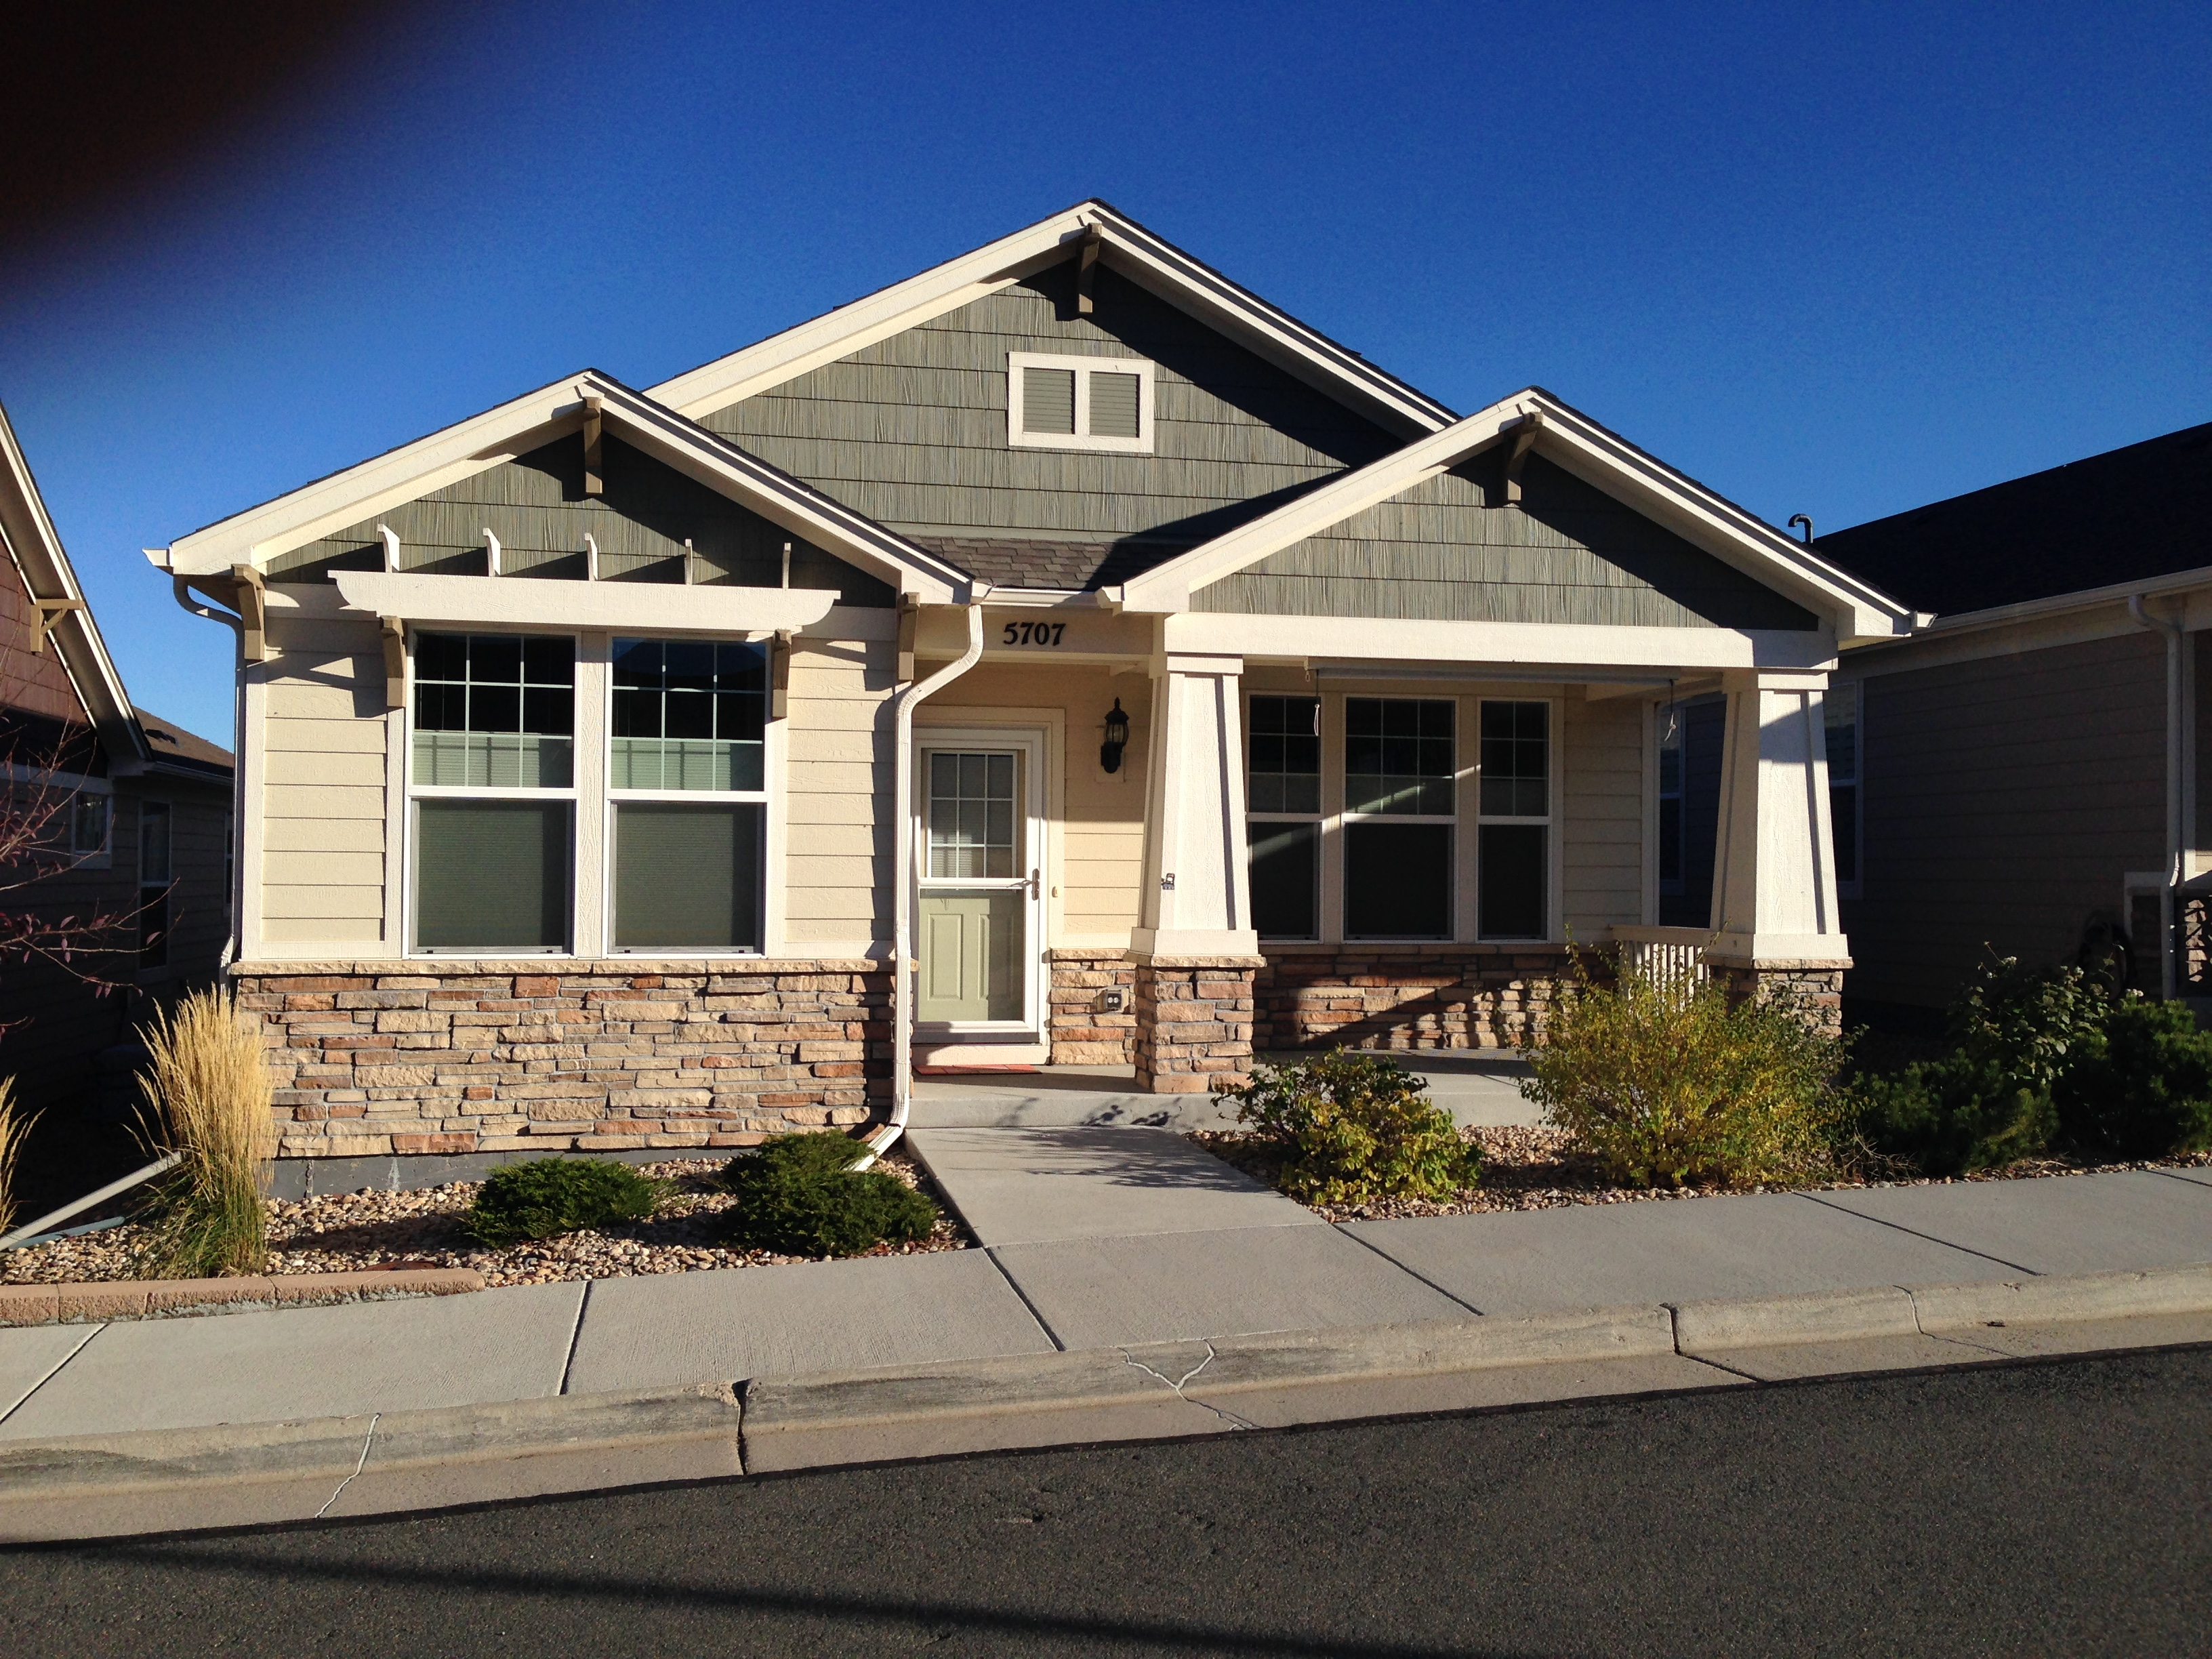 new villas image move patio homes homesite in a your home ridge quick denver find quickmovein barcelona legacy